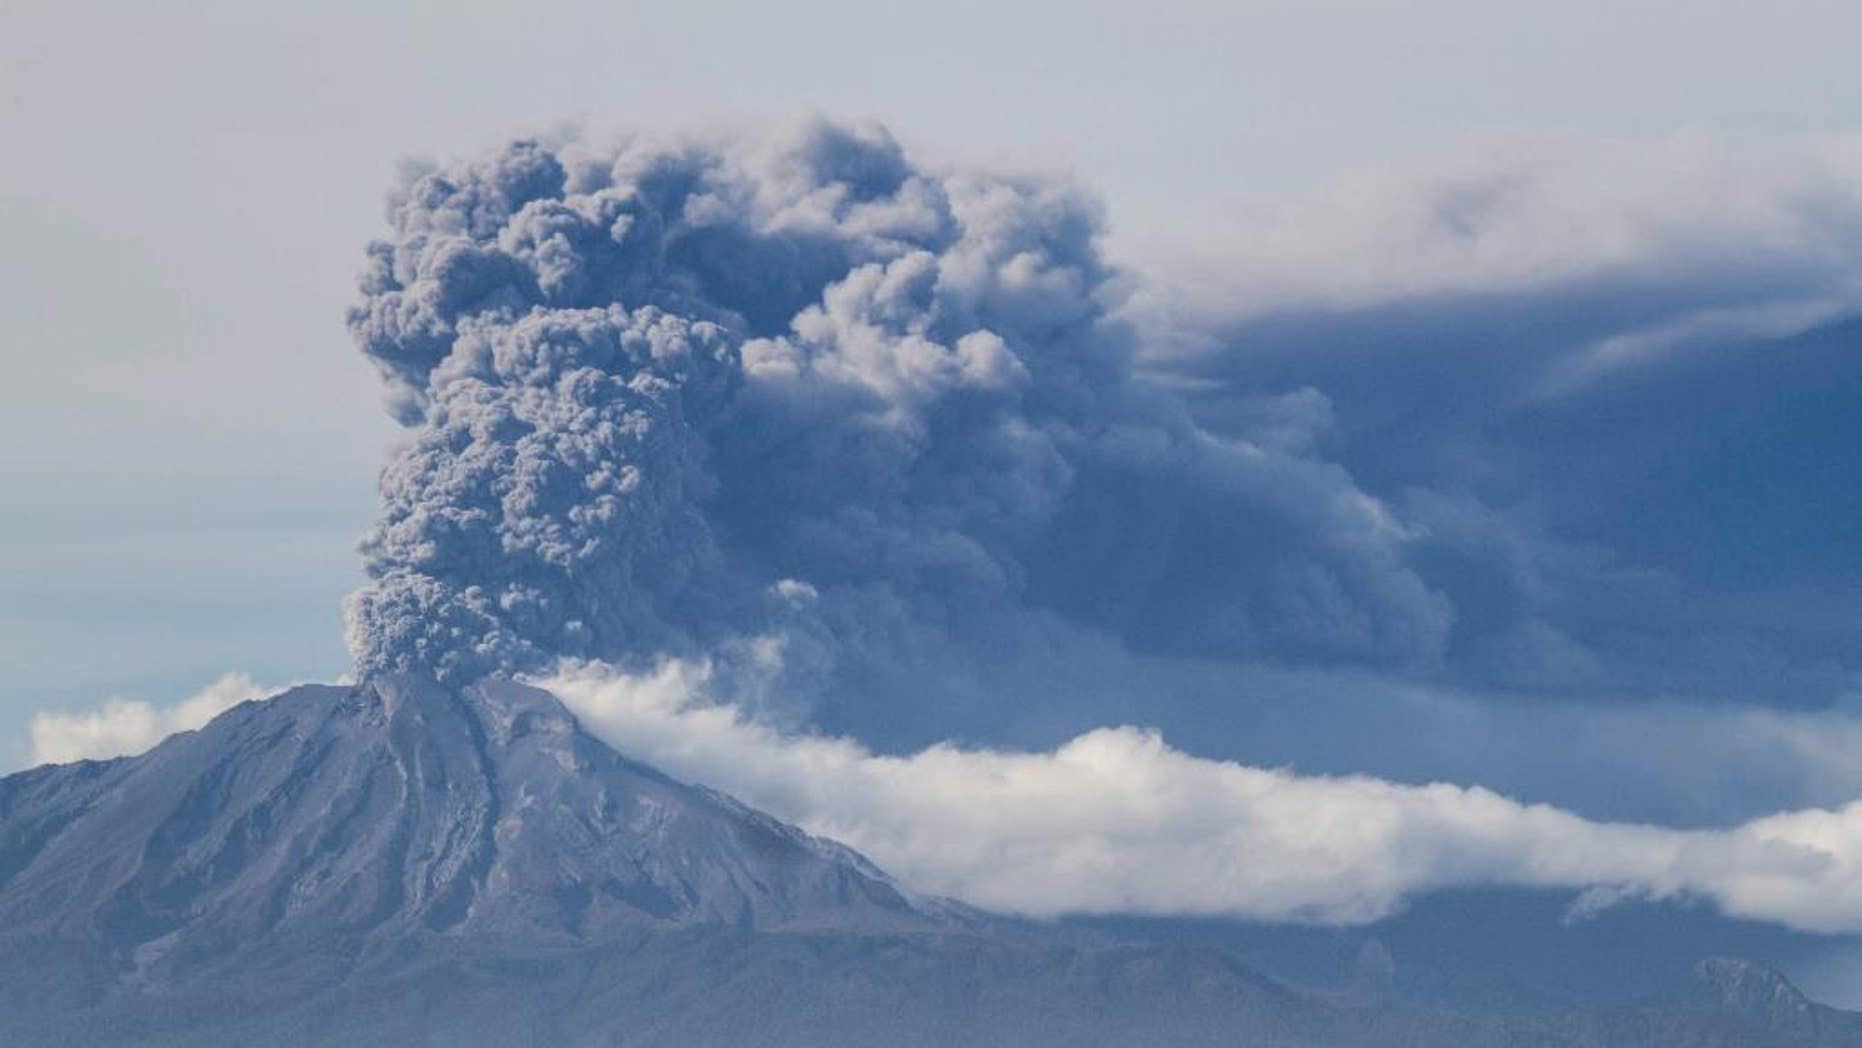 A thick plume pours from the Calbuco volcano, near Puerto Varas, Chile, Thursday, April 30, 2015.  The olcano erupted again on Thursday, sending dark burst of ash and hot rock billowing into the air and prompting Chilean officials to order new evacuation of nearby residents. The eruptions at the Calbuco are the first in more than four decades. About 4,500 people have been evacuated since the Calbuco roared back to life on April 22, sending ash about 11 miles (18 kilometers) into the sky. (AP Photo/David Cortes Serey/ Agencia Uno) CHILE OUT - NO USAR EN CHILE